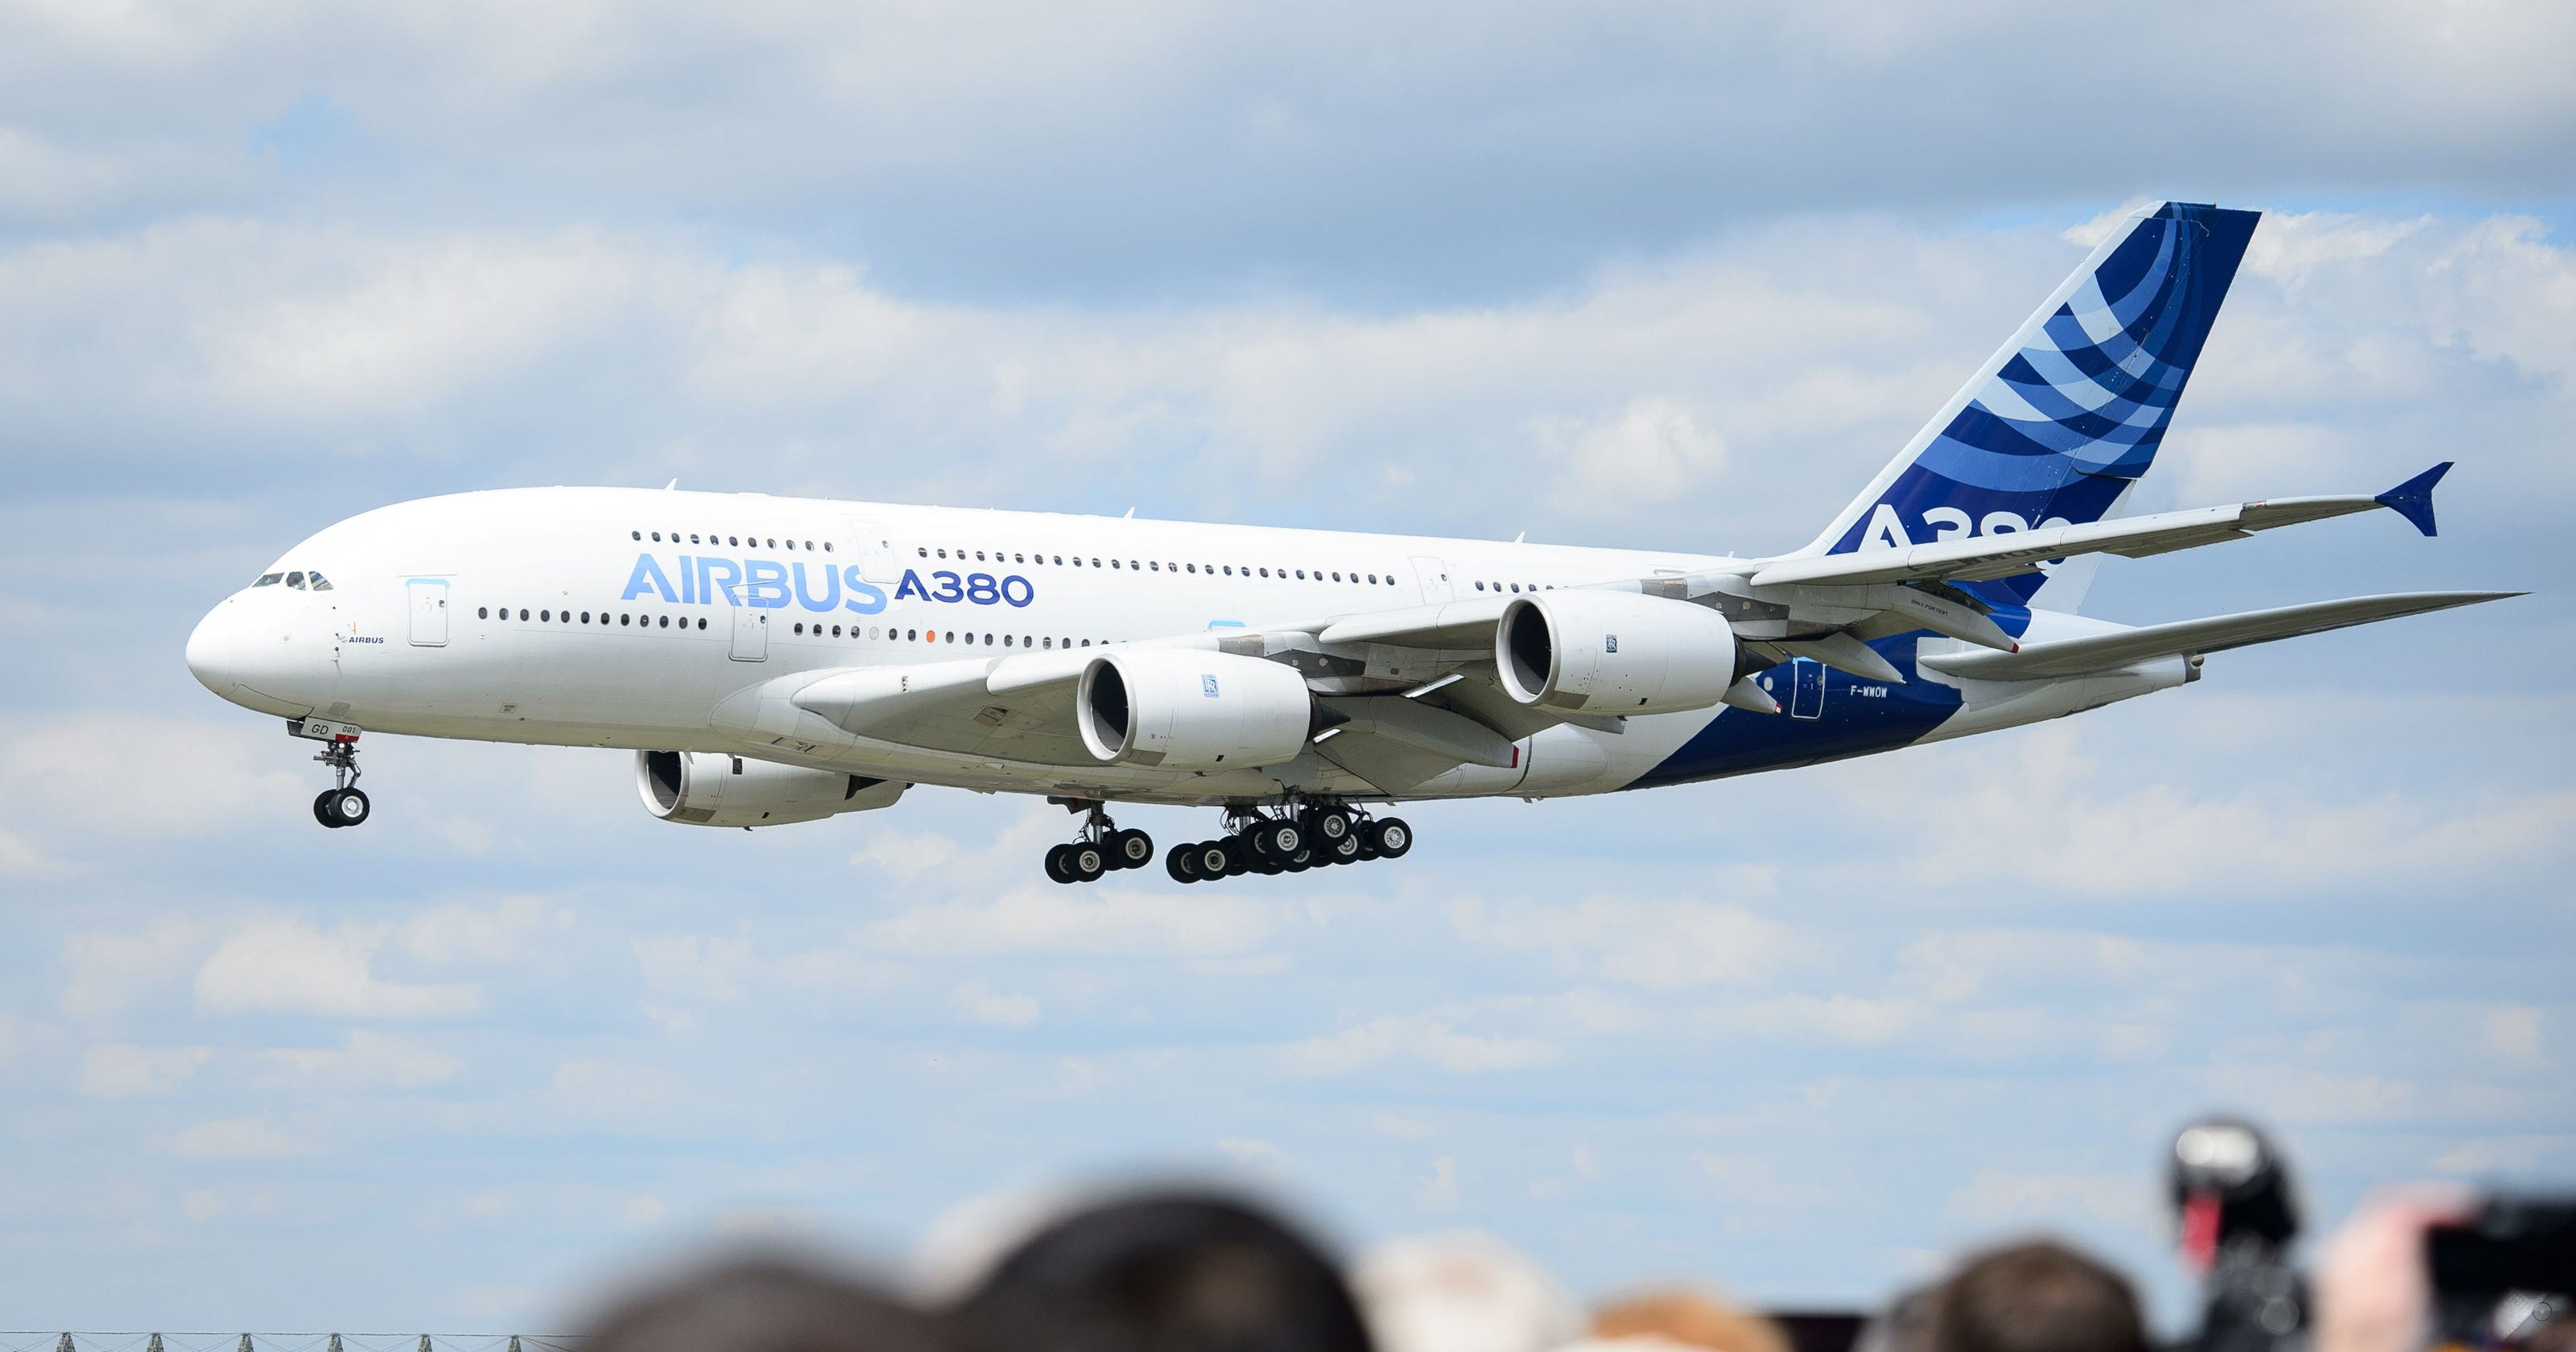 Airbus A380: Superjumbo jet line will come to and end